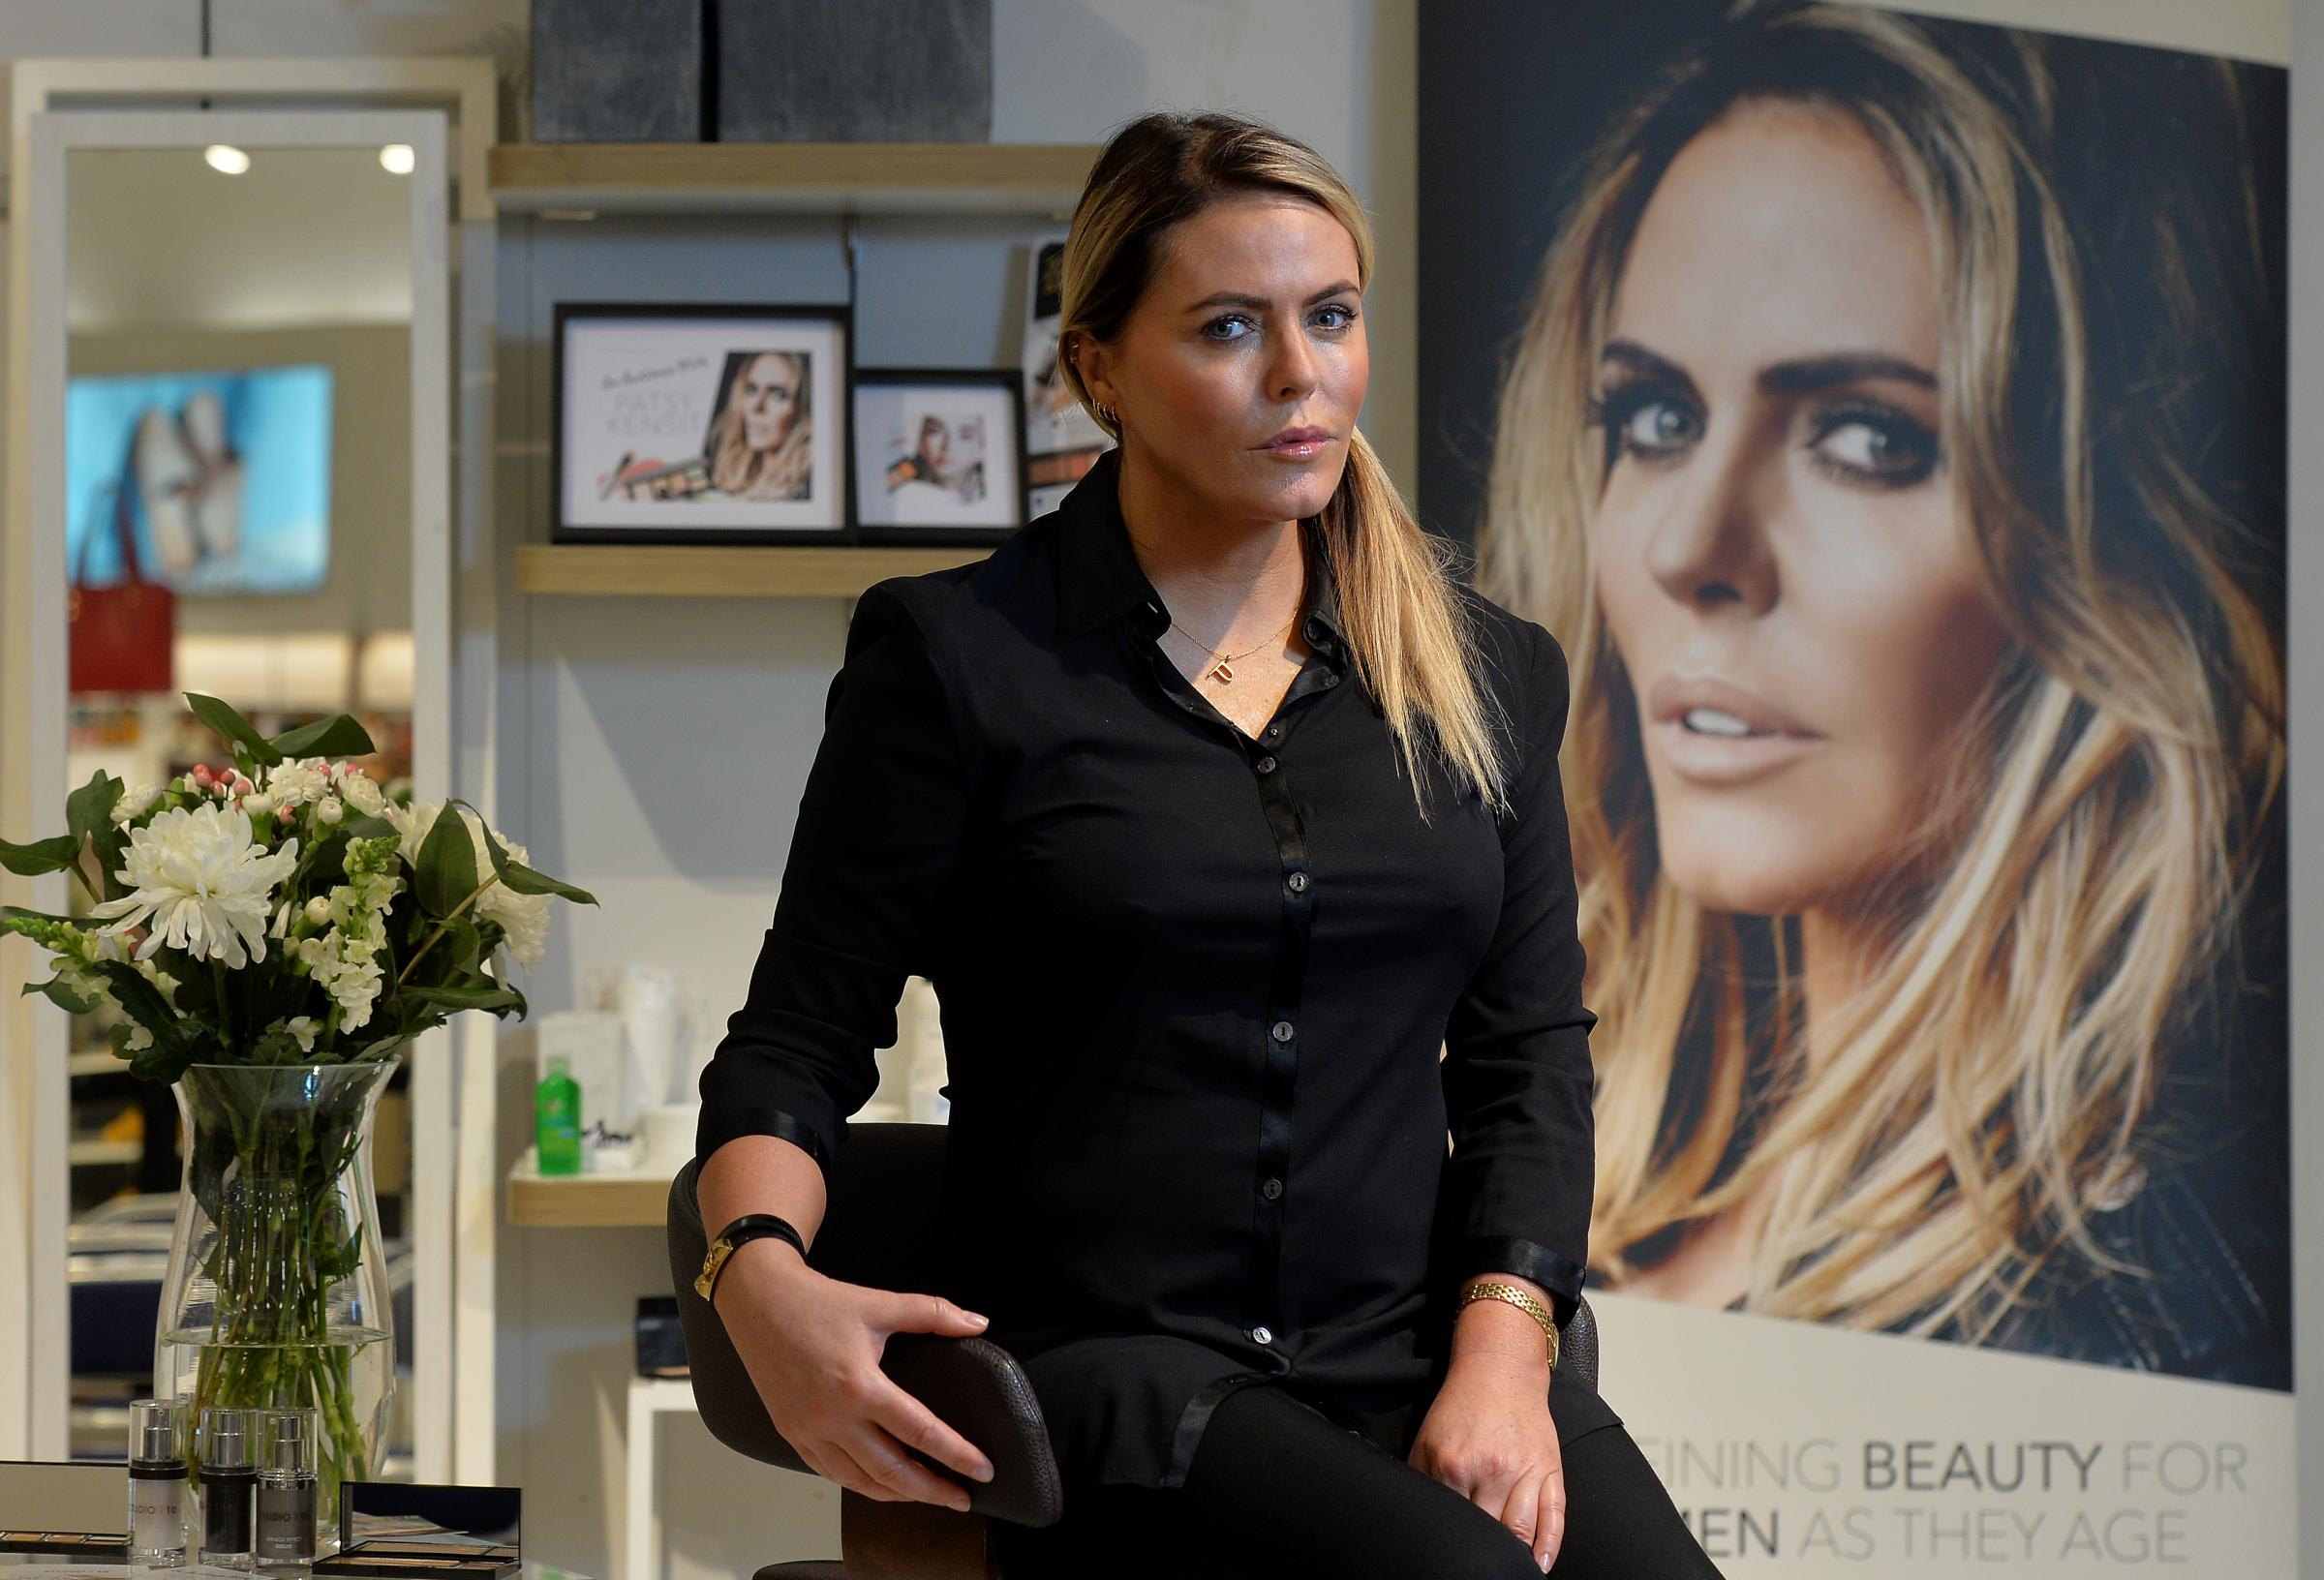 In pictures: Patsy Kensit launches collection in Glasgow